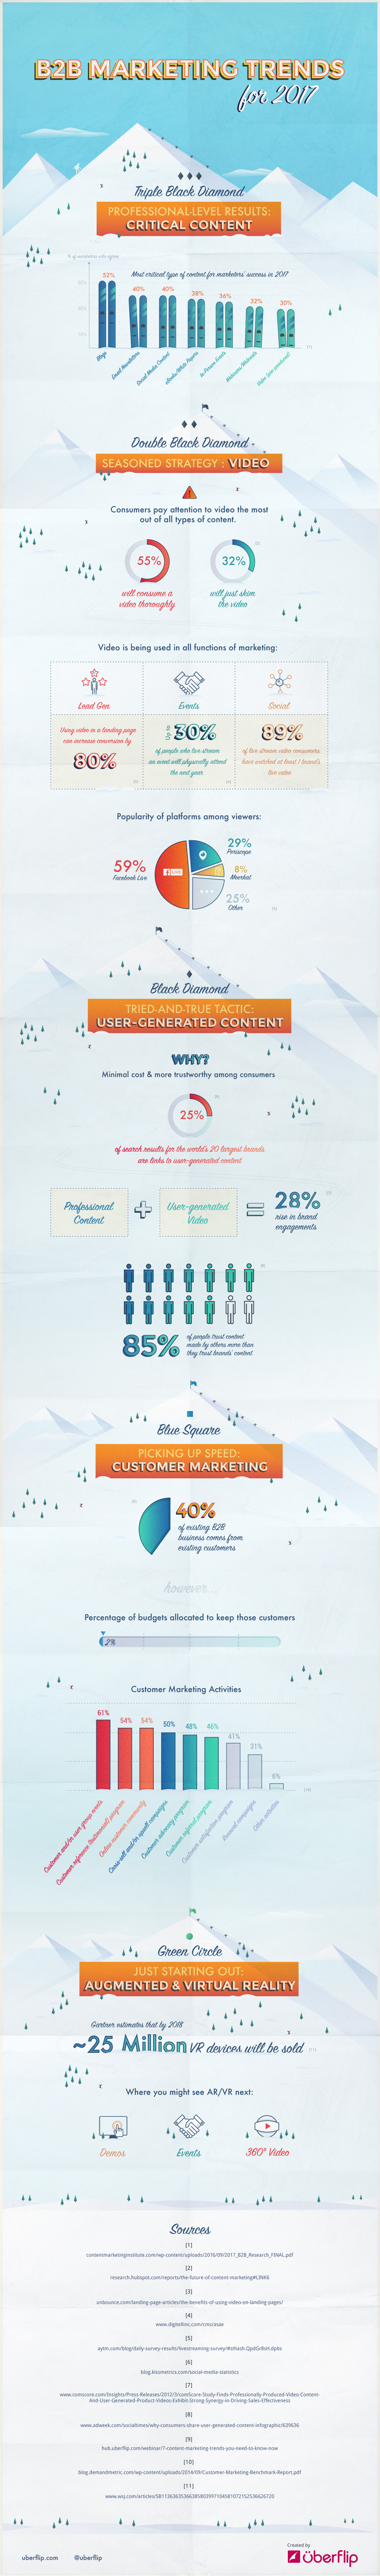 2017 marketing trends infographic